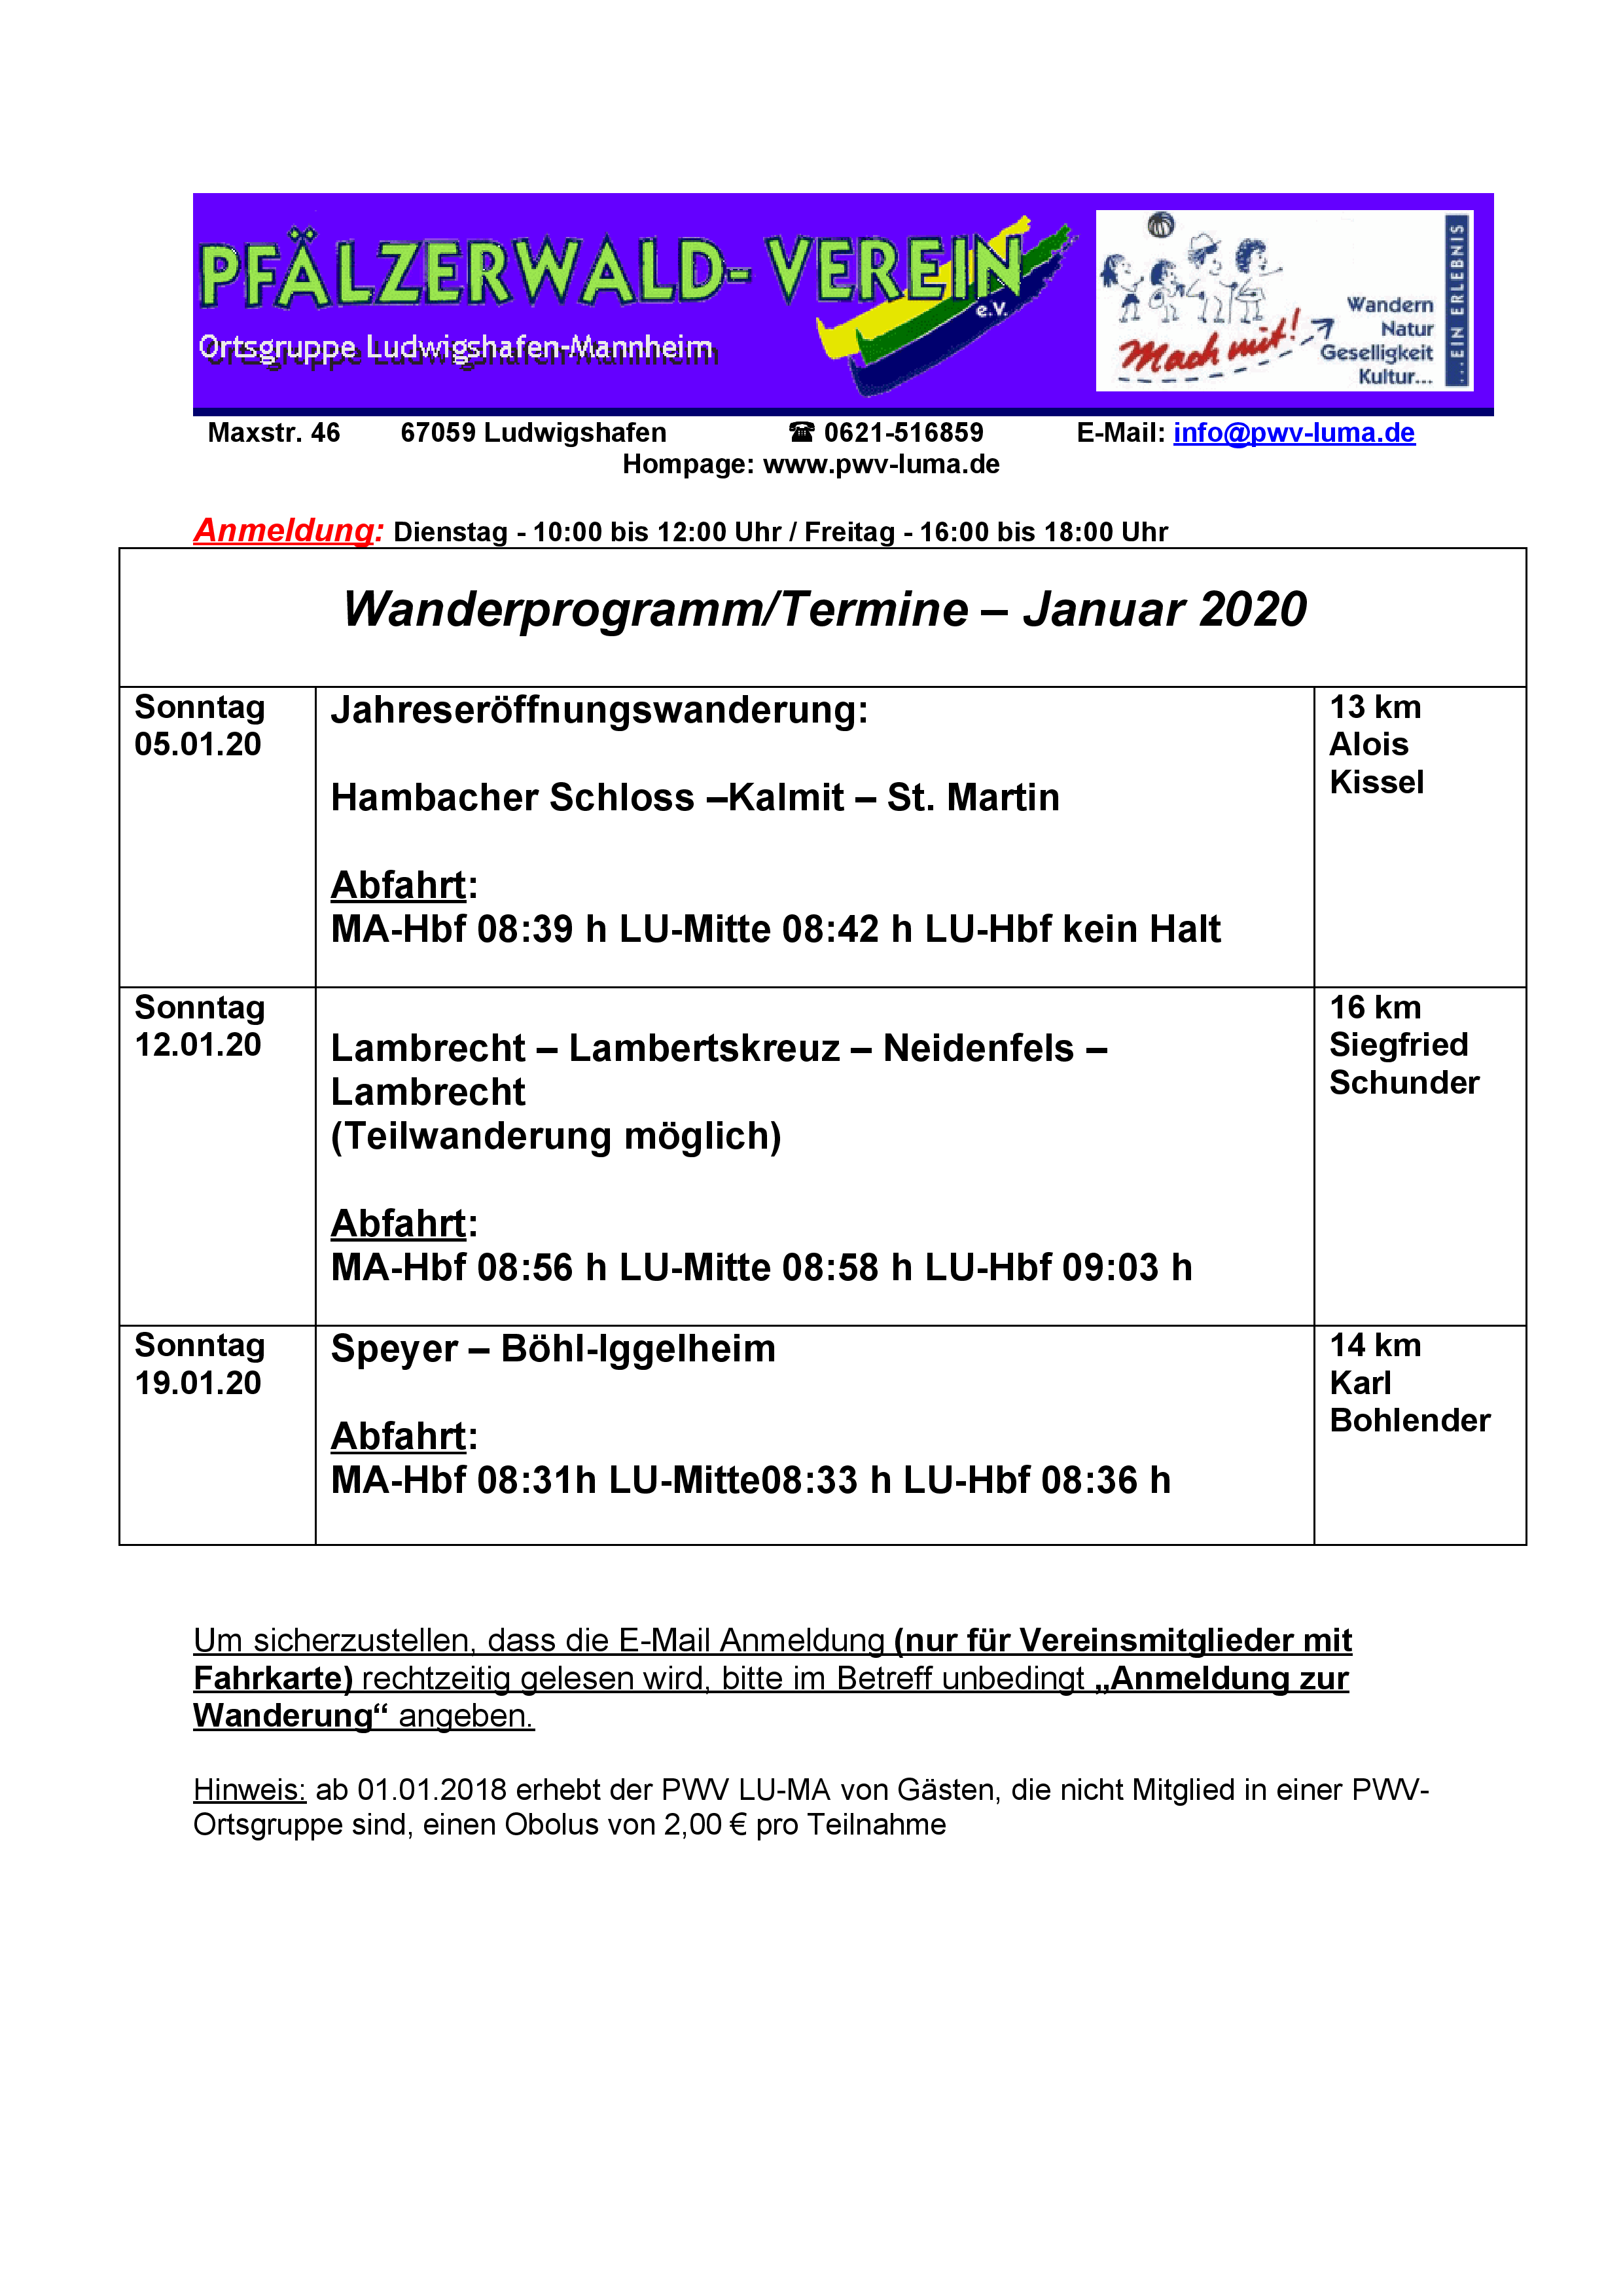 Wanderinformation Januar 2020 (1)